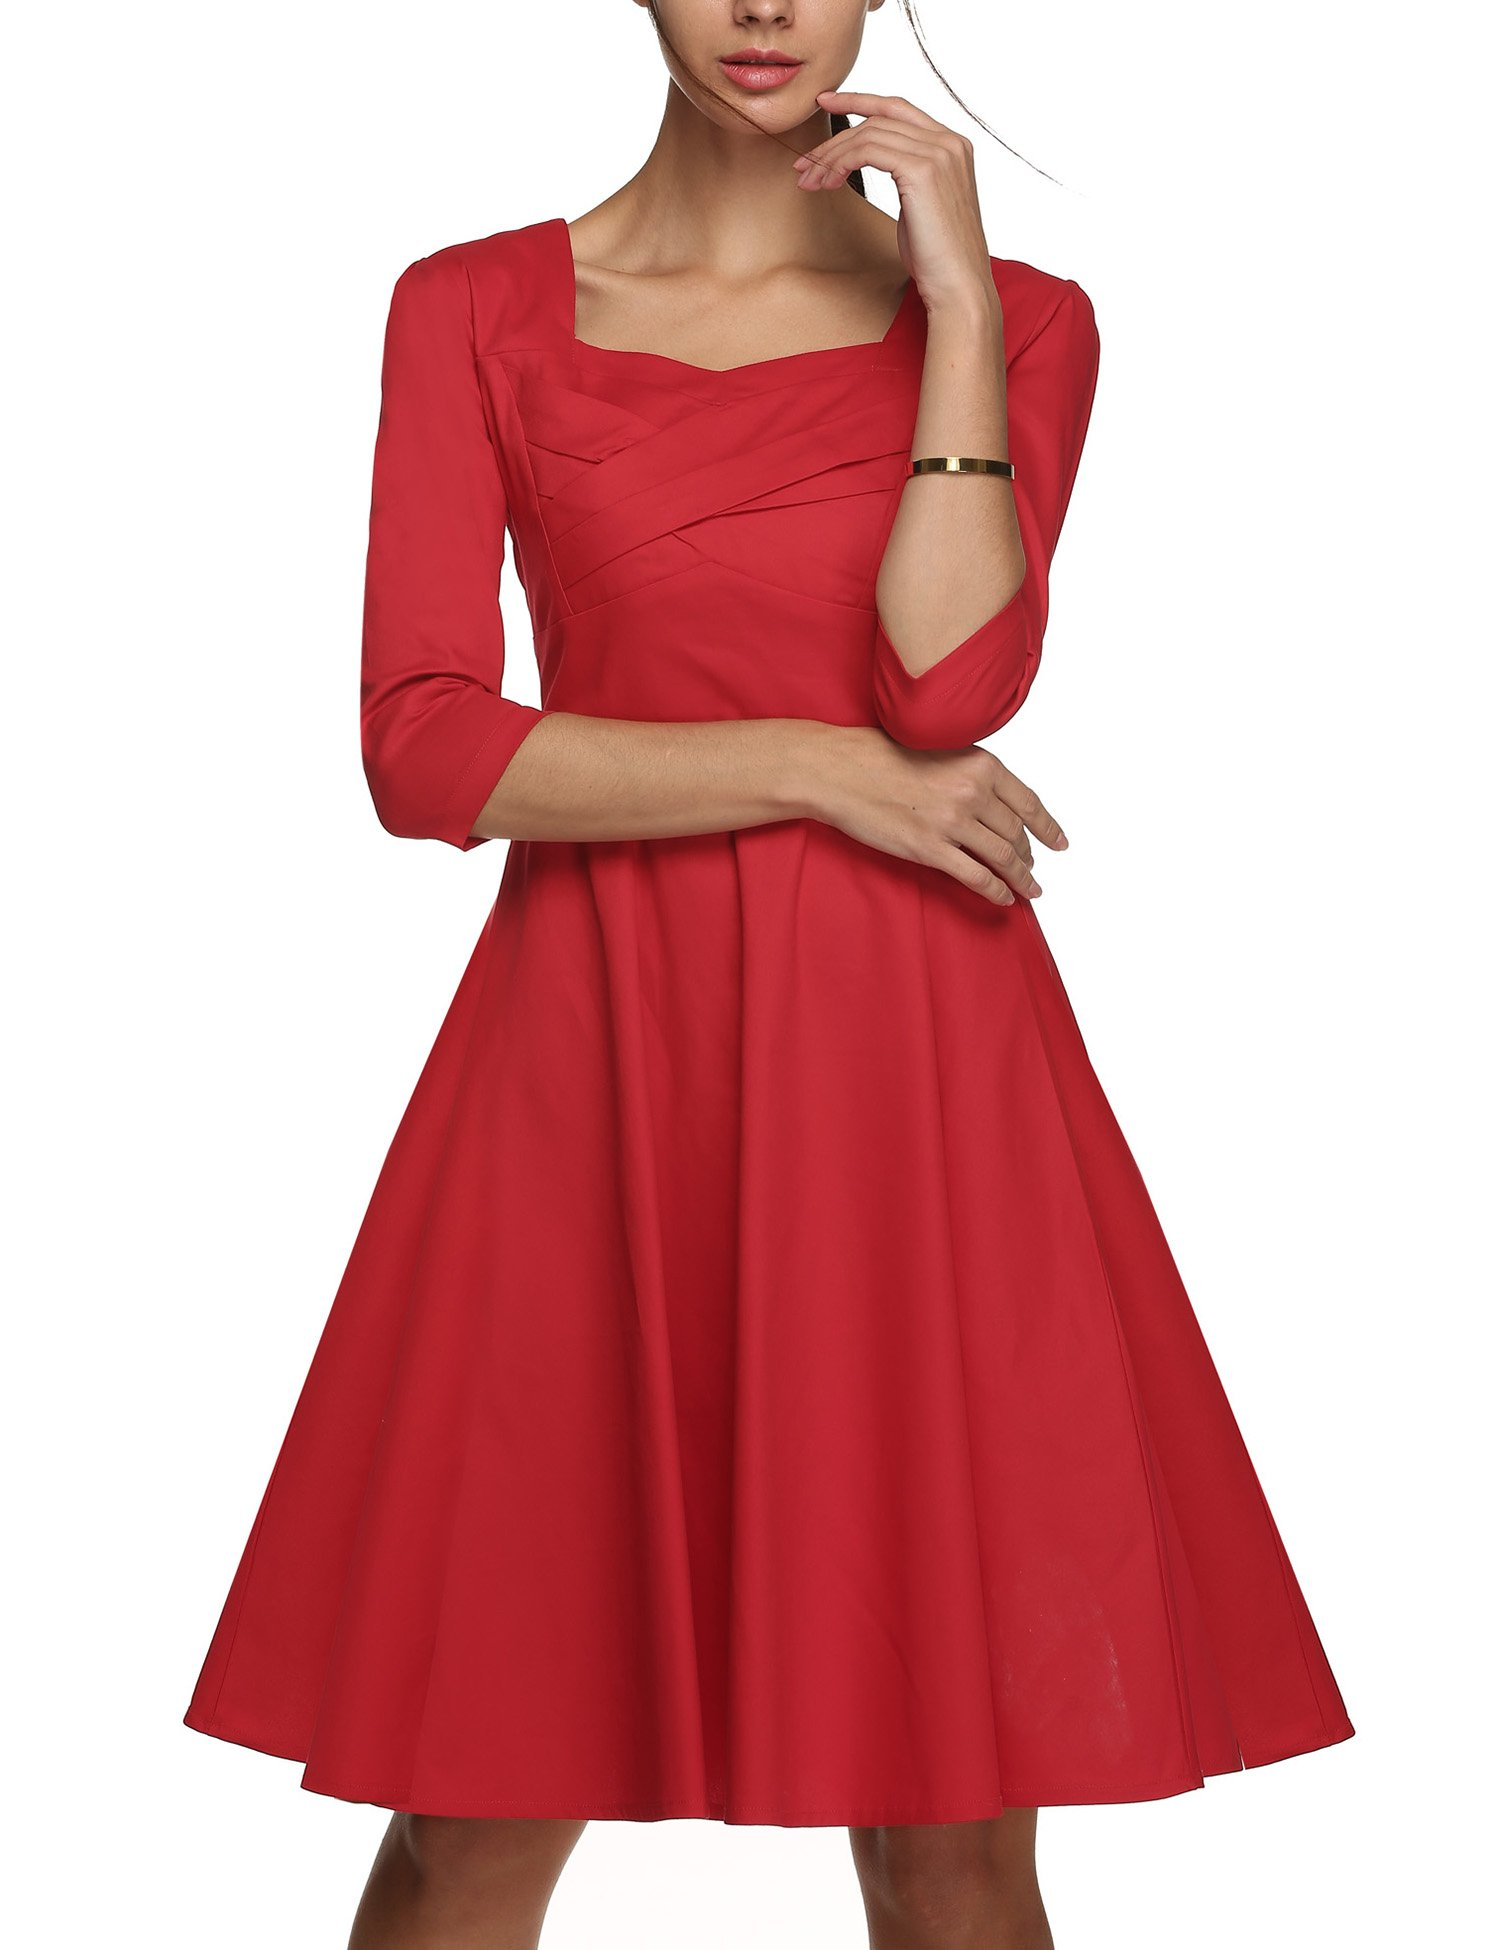 Up Beauty UpBeauty Women's 50's Vintage 3 4 Sleeve Cocktail Prom Party Swing Dress,Red,X-Large